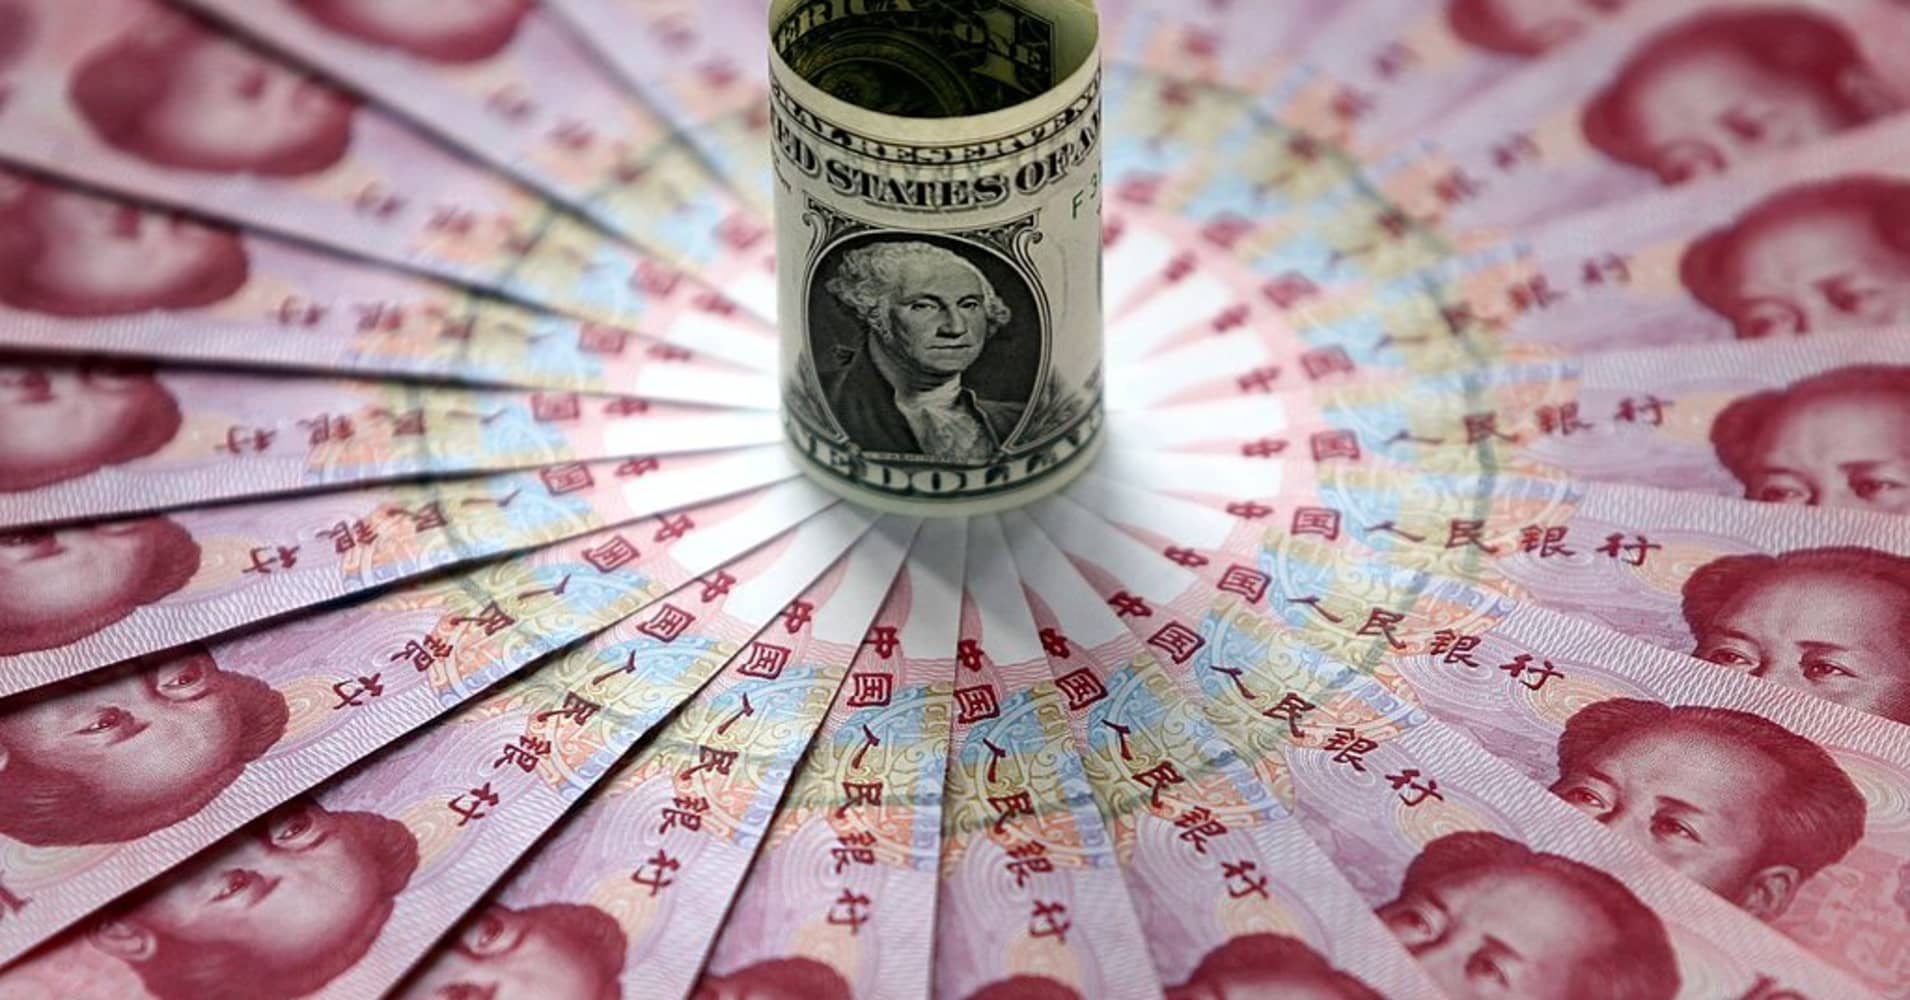 China's yuan climbs against the dollar, boosted by Trump's troubles